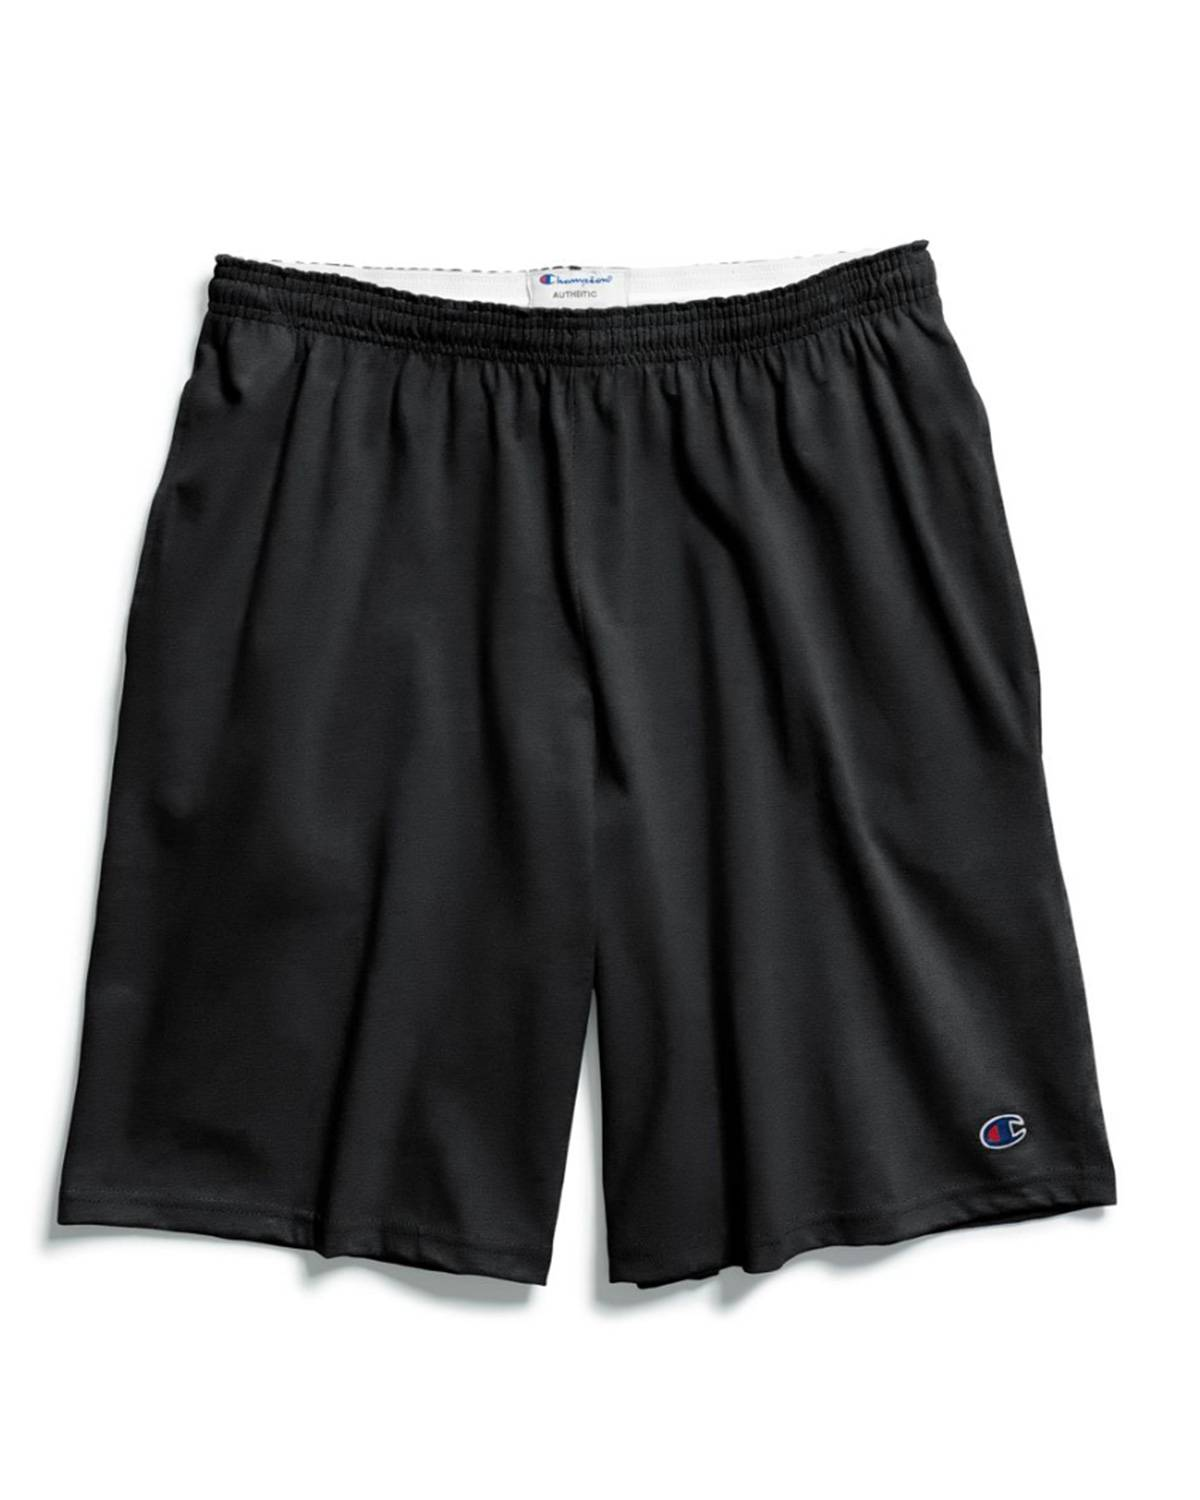 Champion 85653 Authentic Mens Shorts with Pockets - Black - M 85653